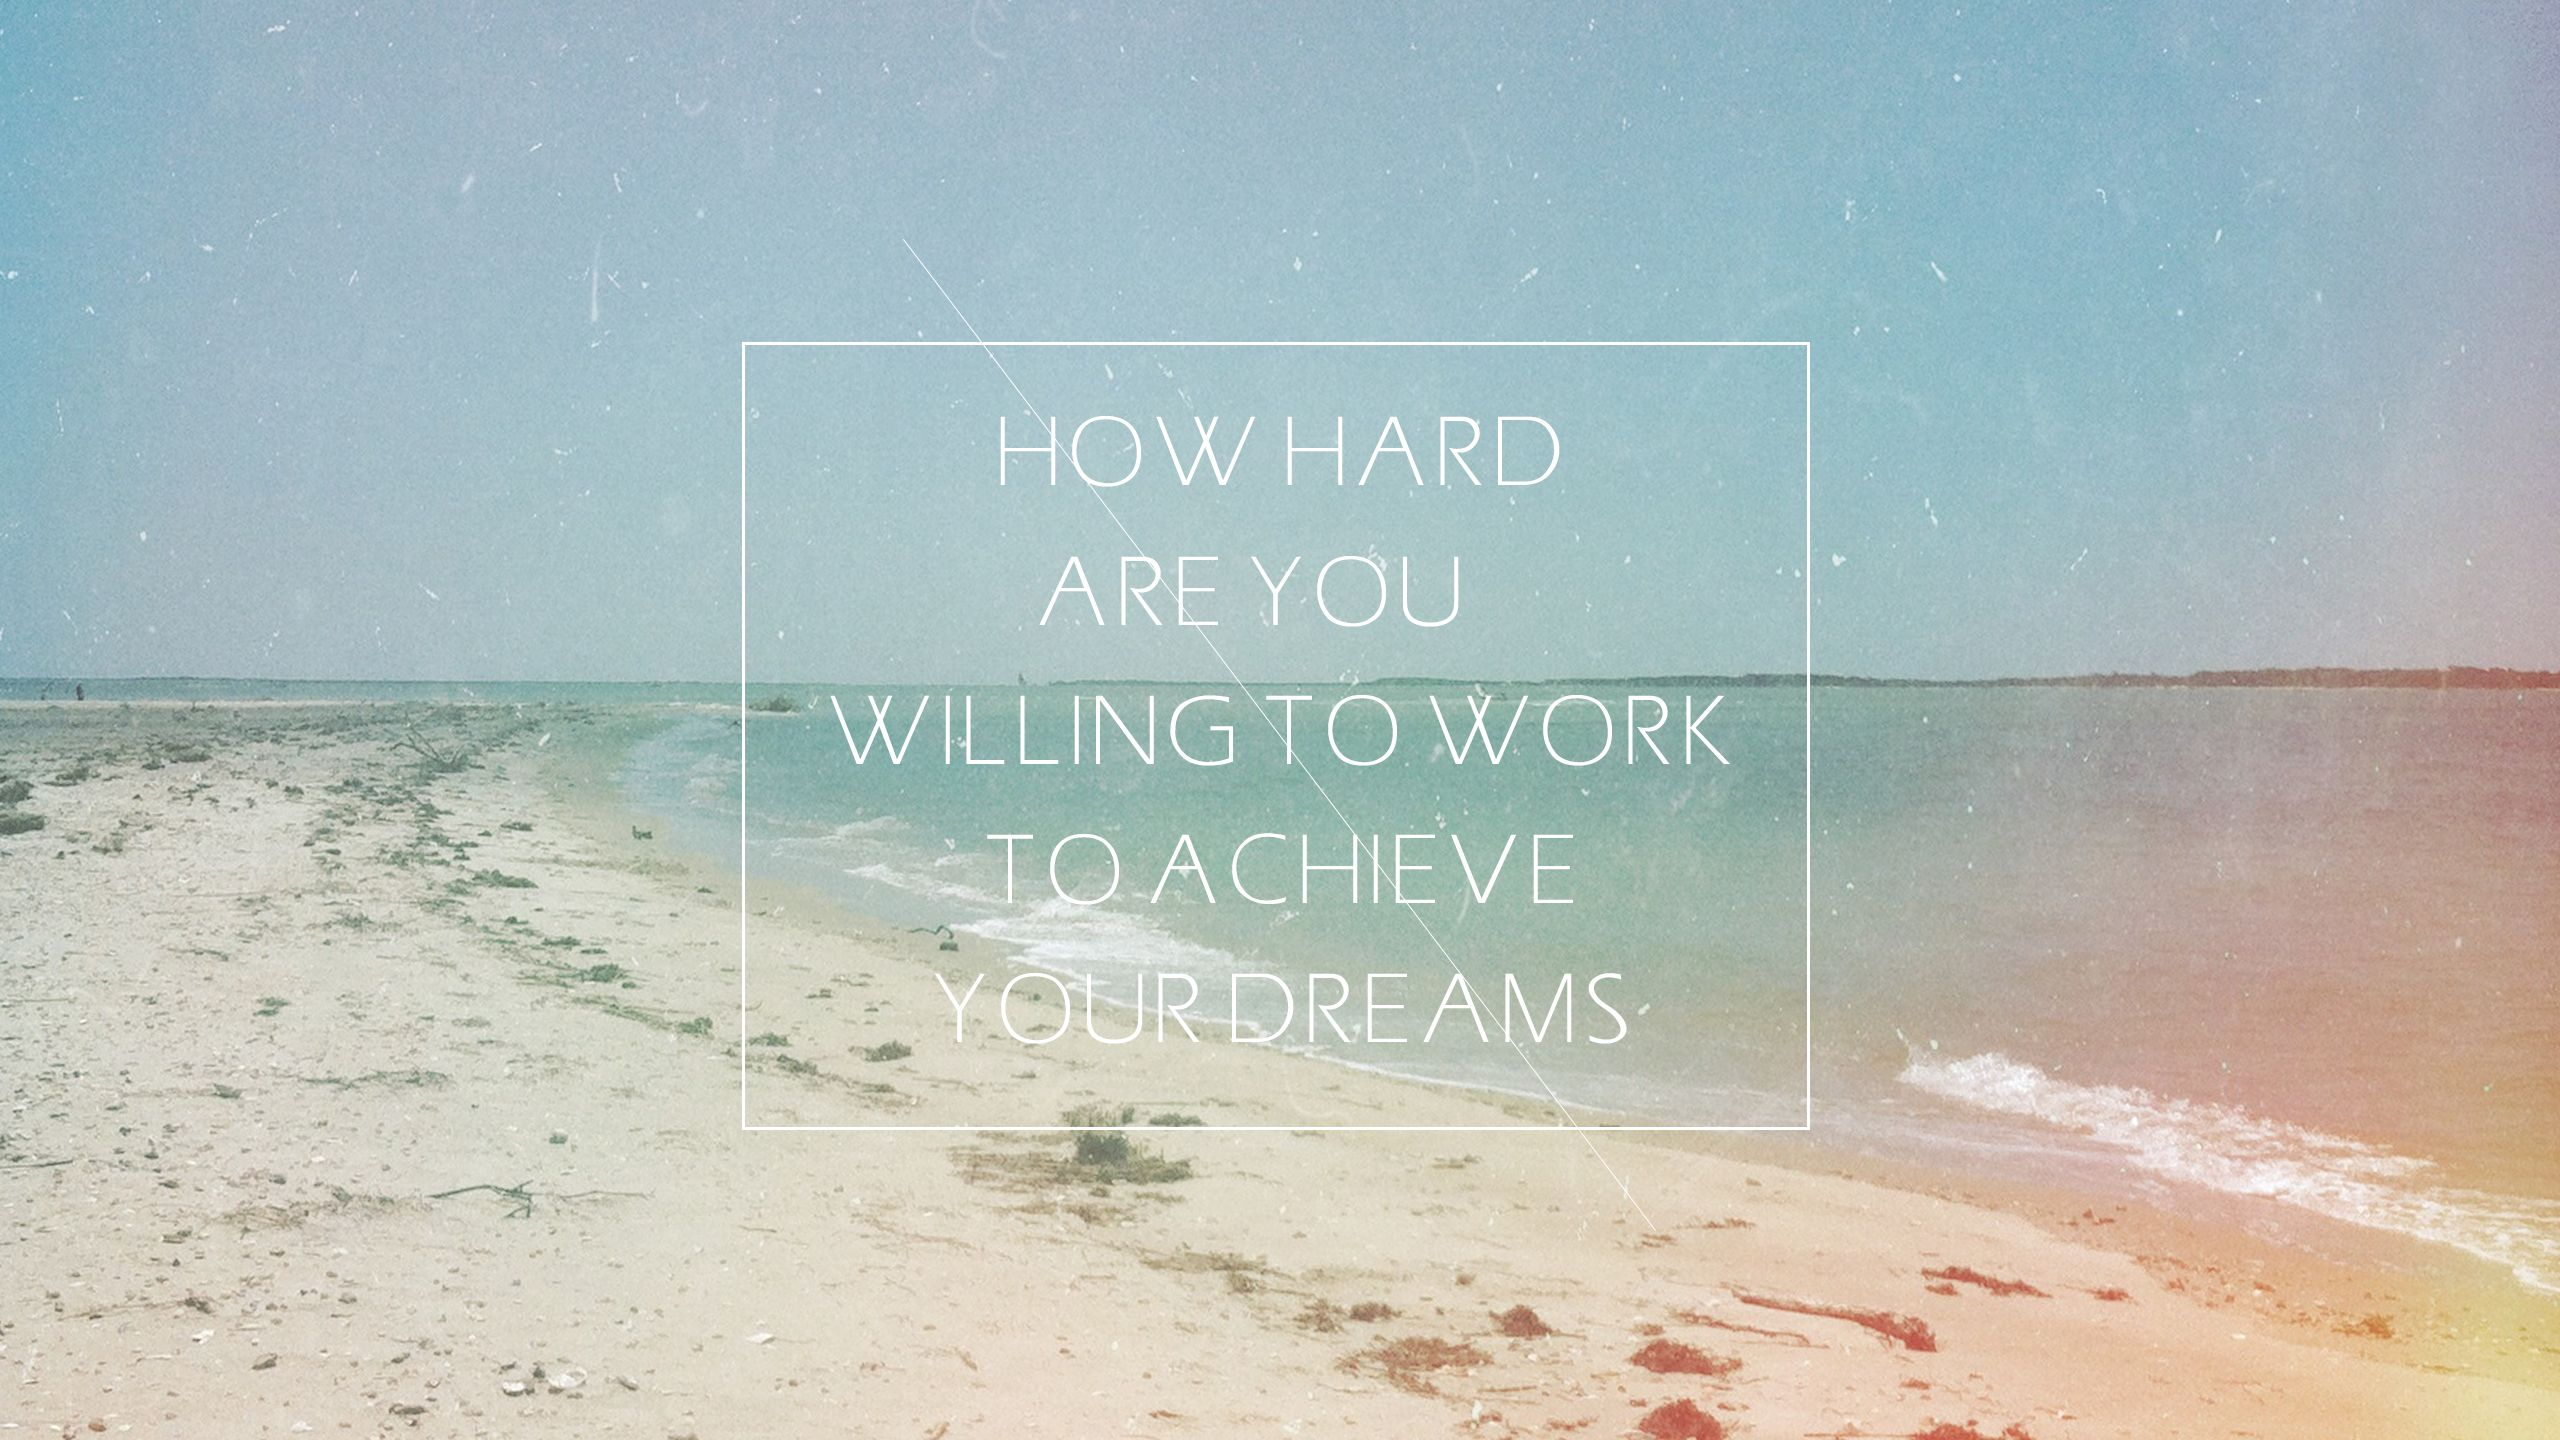 some beachy inspirational wallpaper that is now gracing